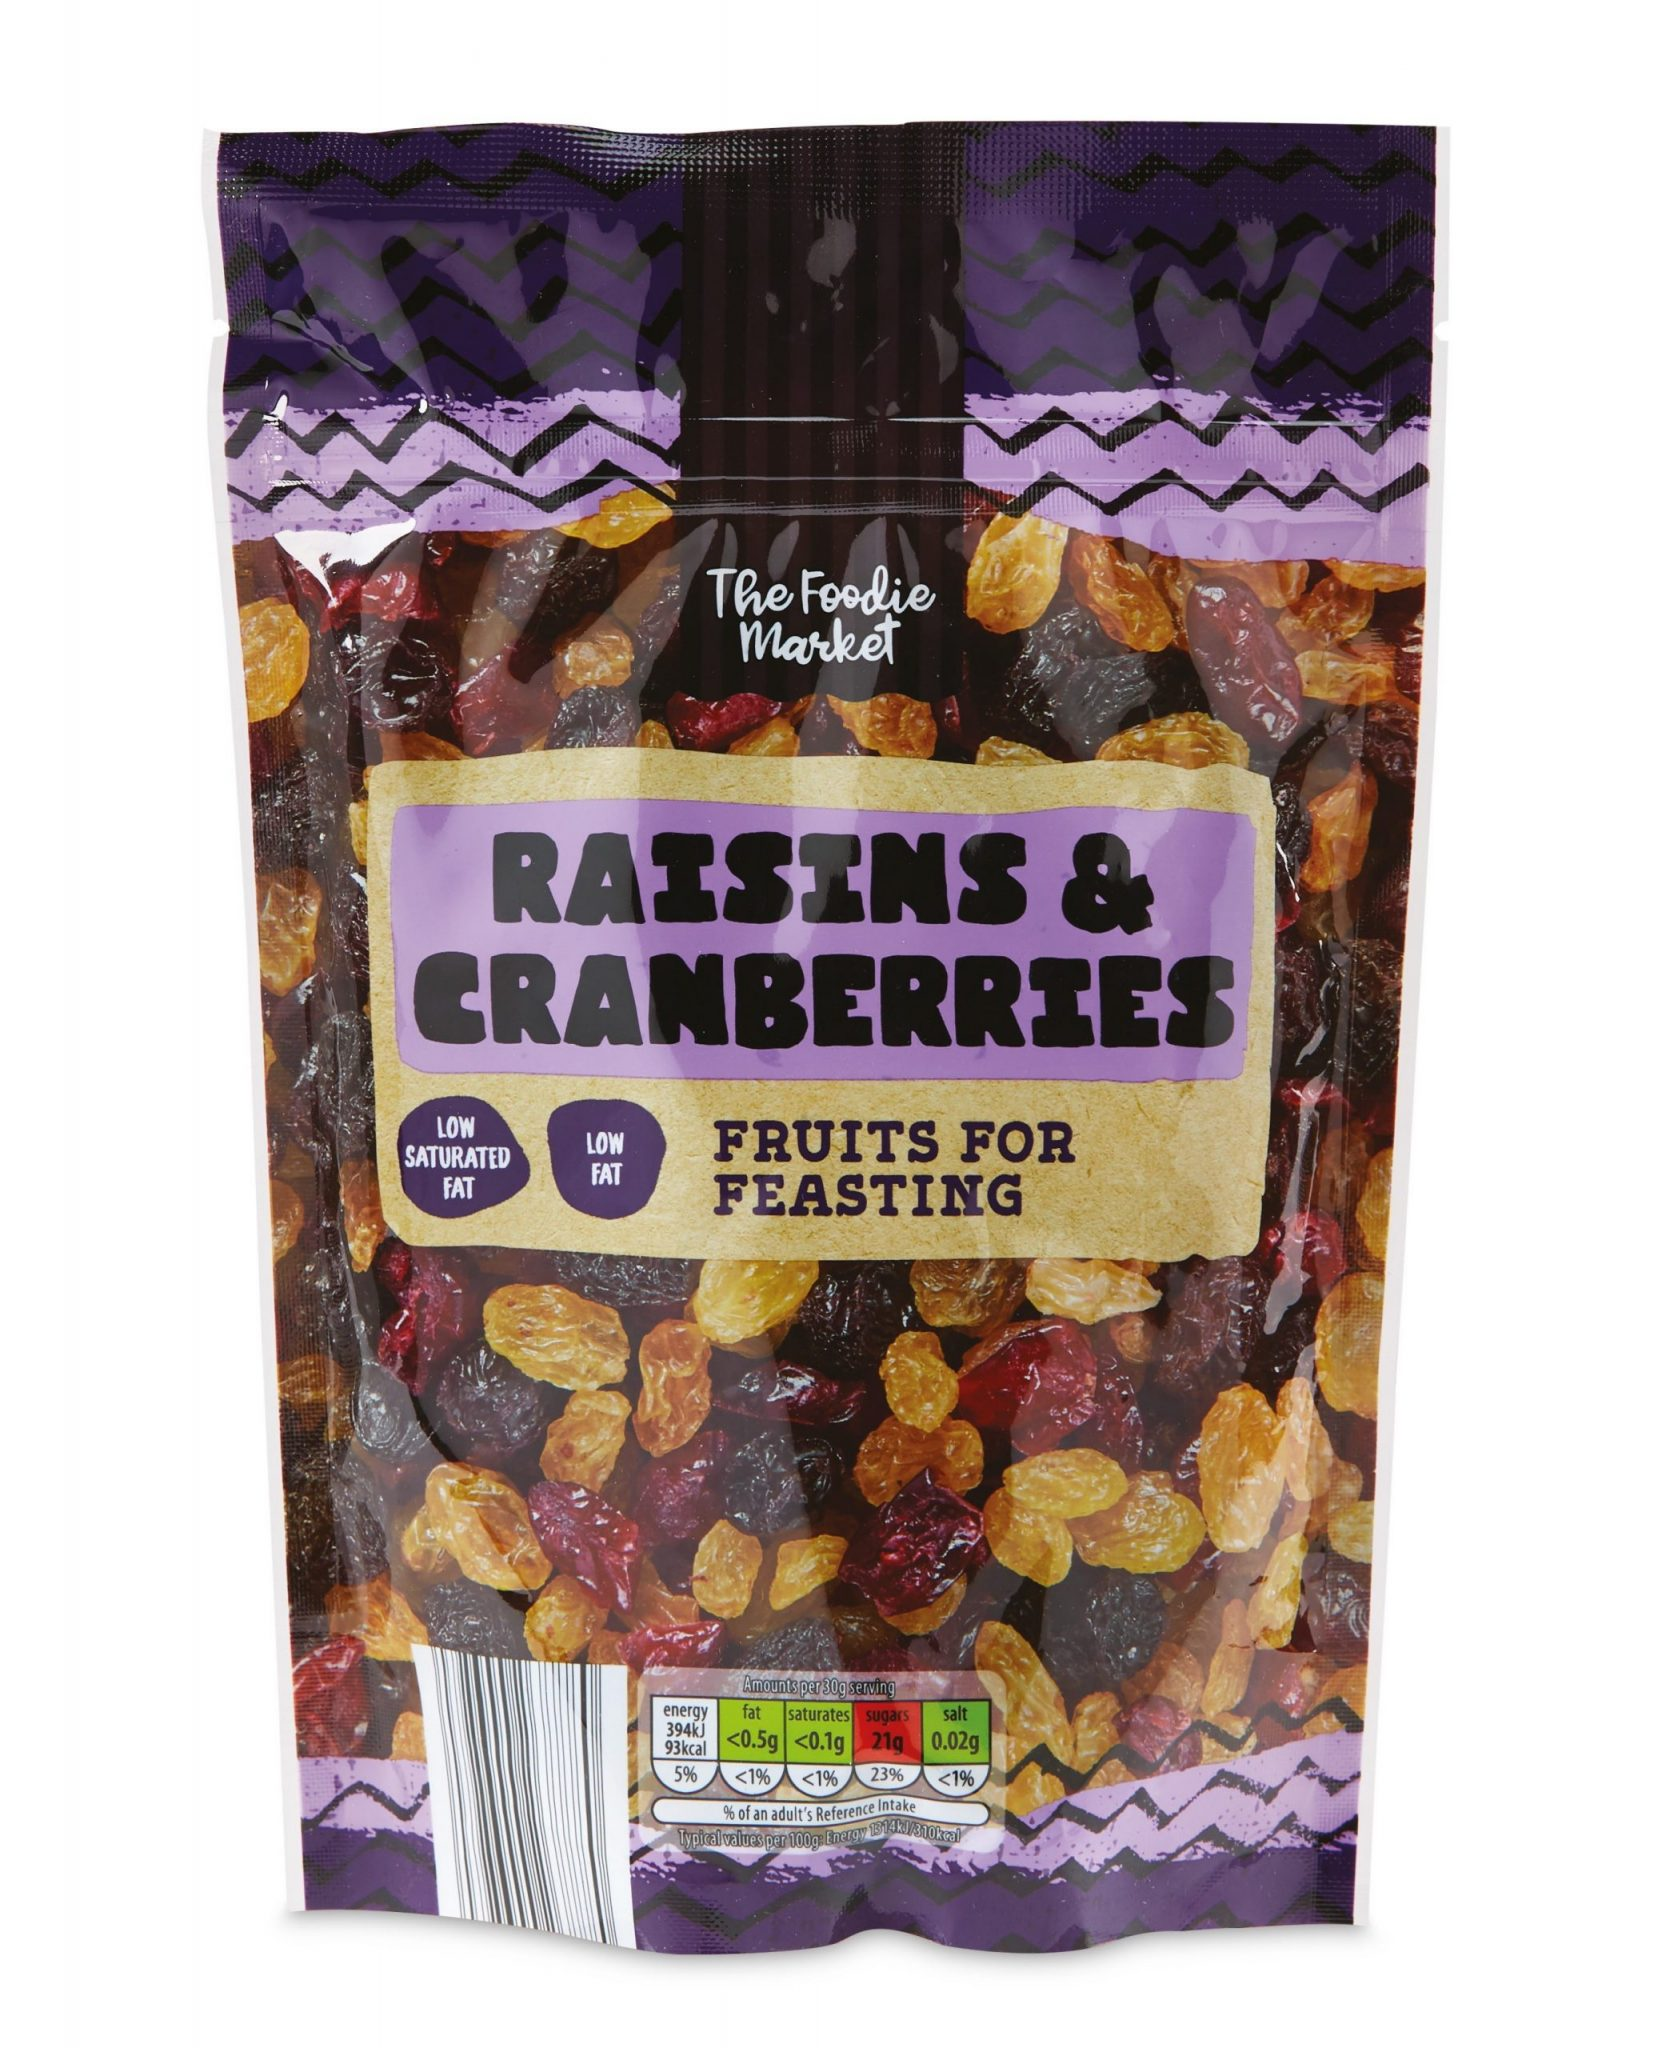 Raisin and Cranberry Mix, £1.19, 300g, available now.